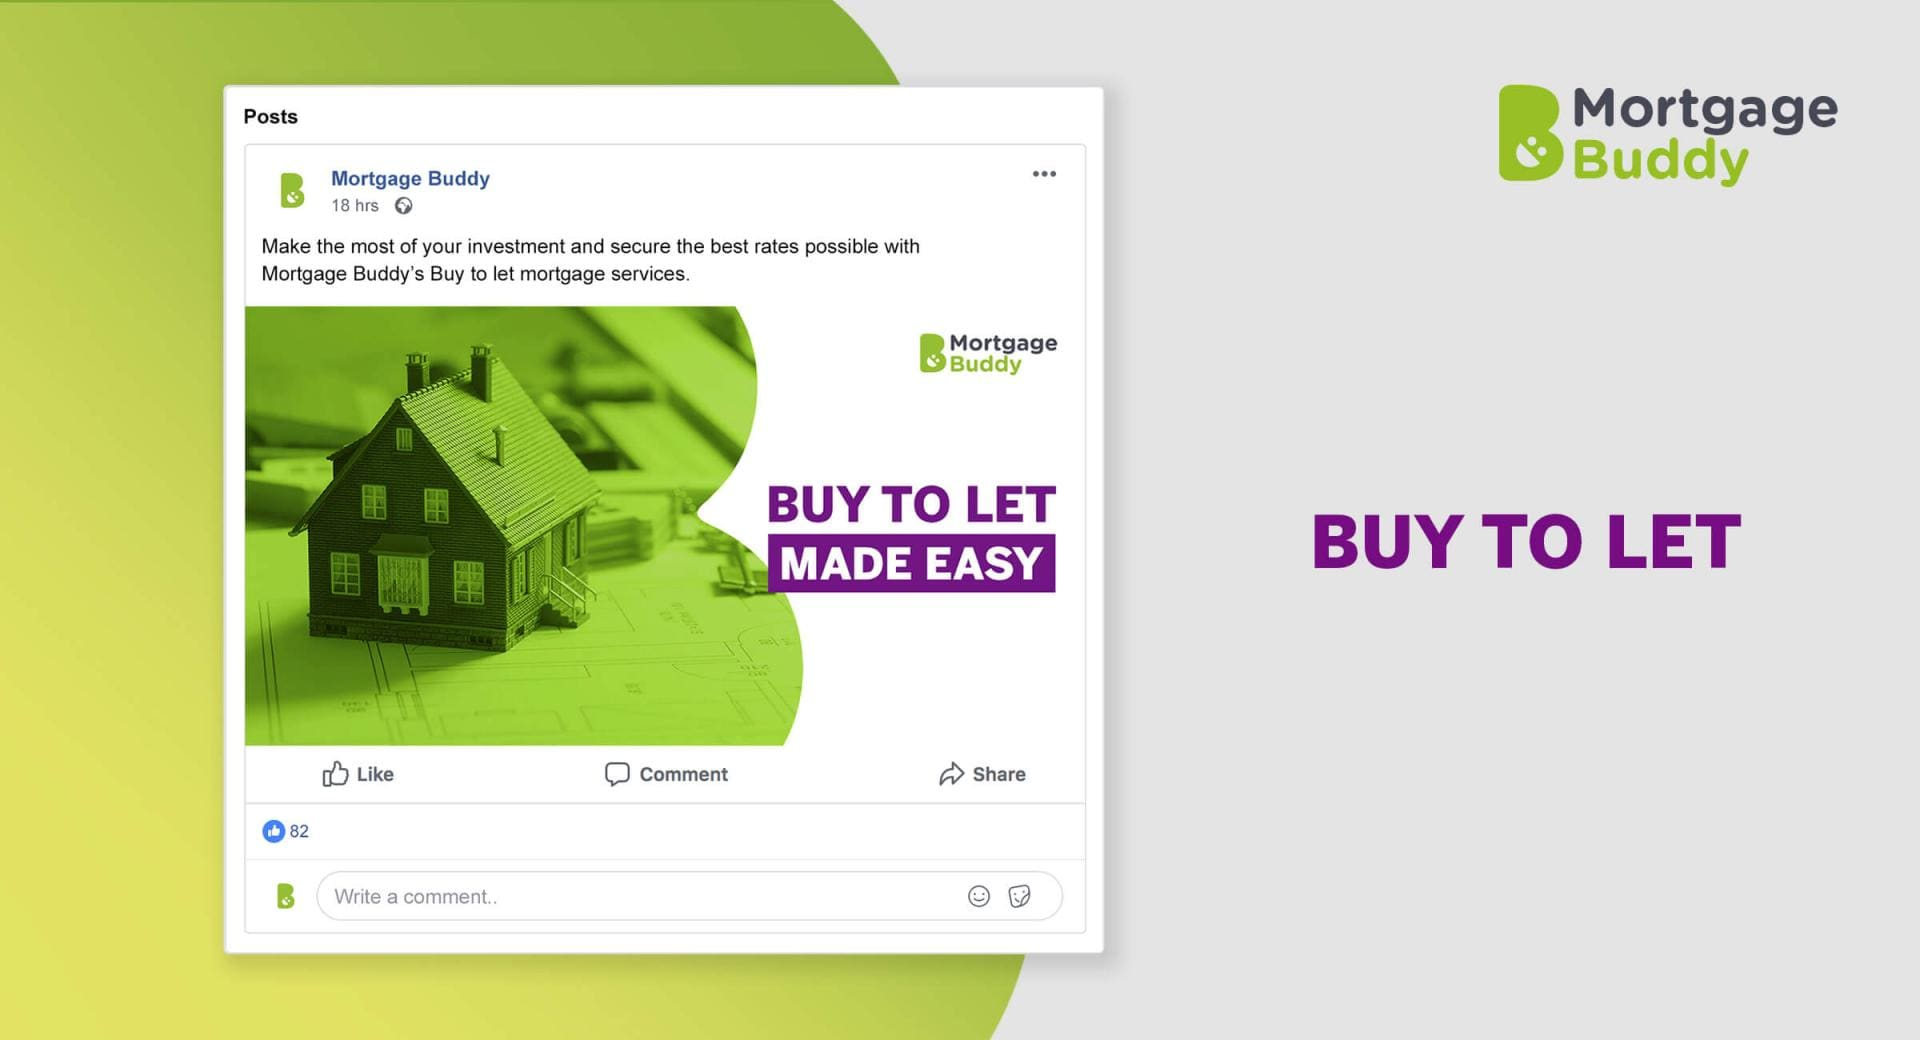 Screenshot of Facebook Advertisement showing an architects model of a house on house blueprints